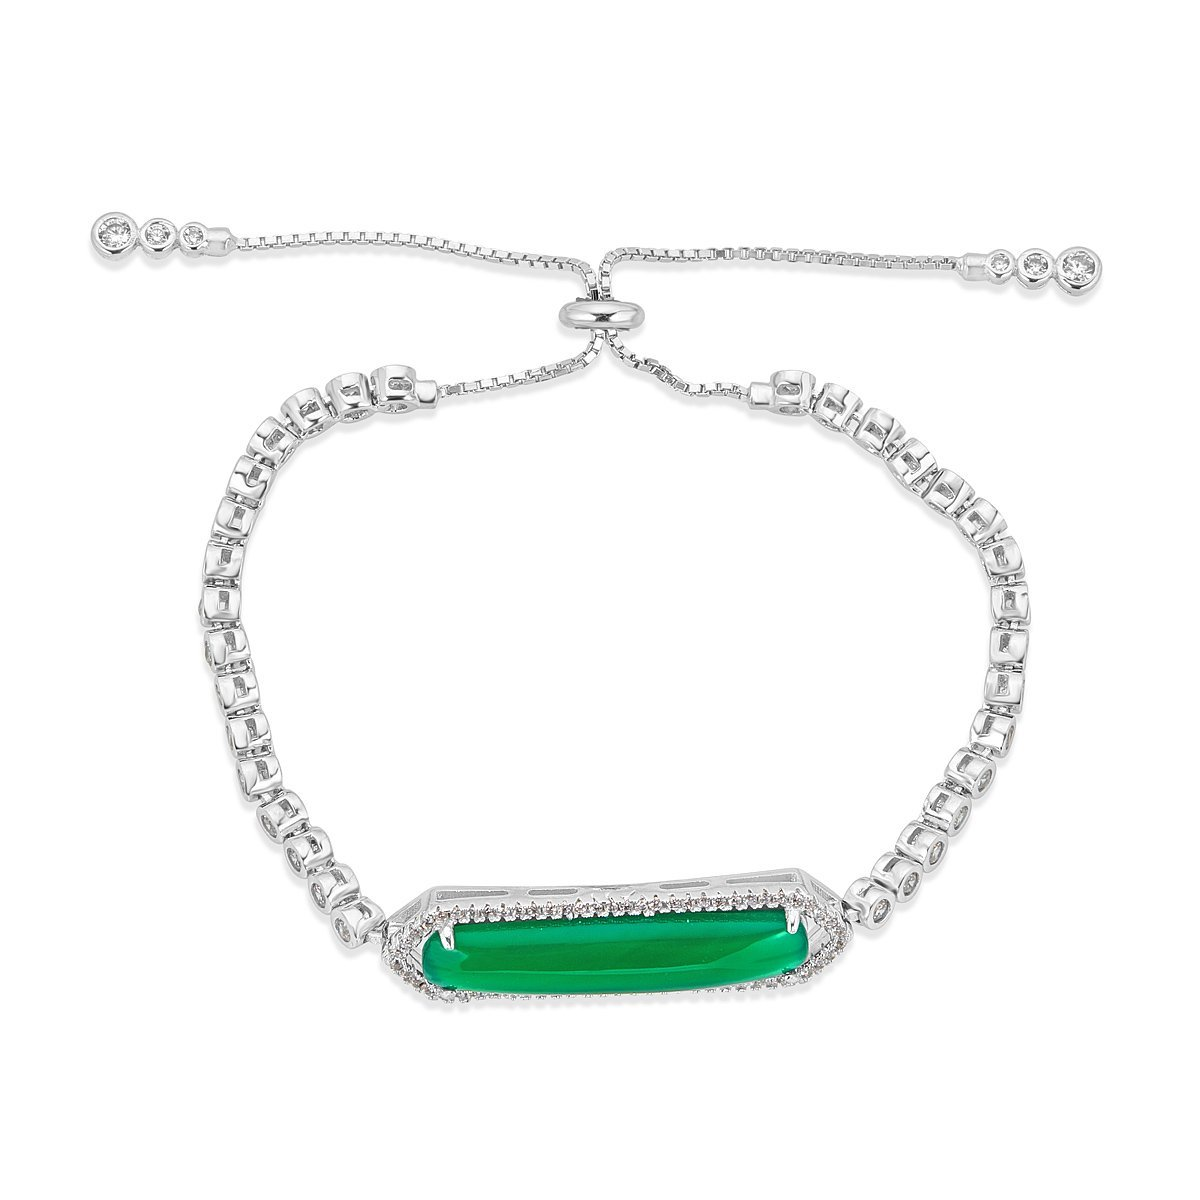 Platinum Plated Sterling Silver Green Agate Miami Bracelet